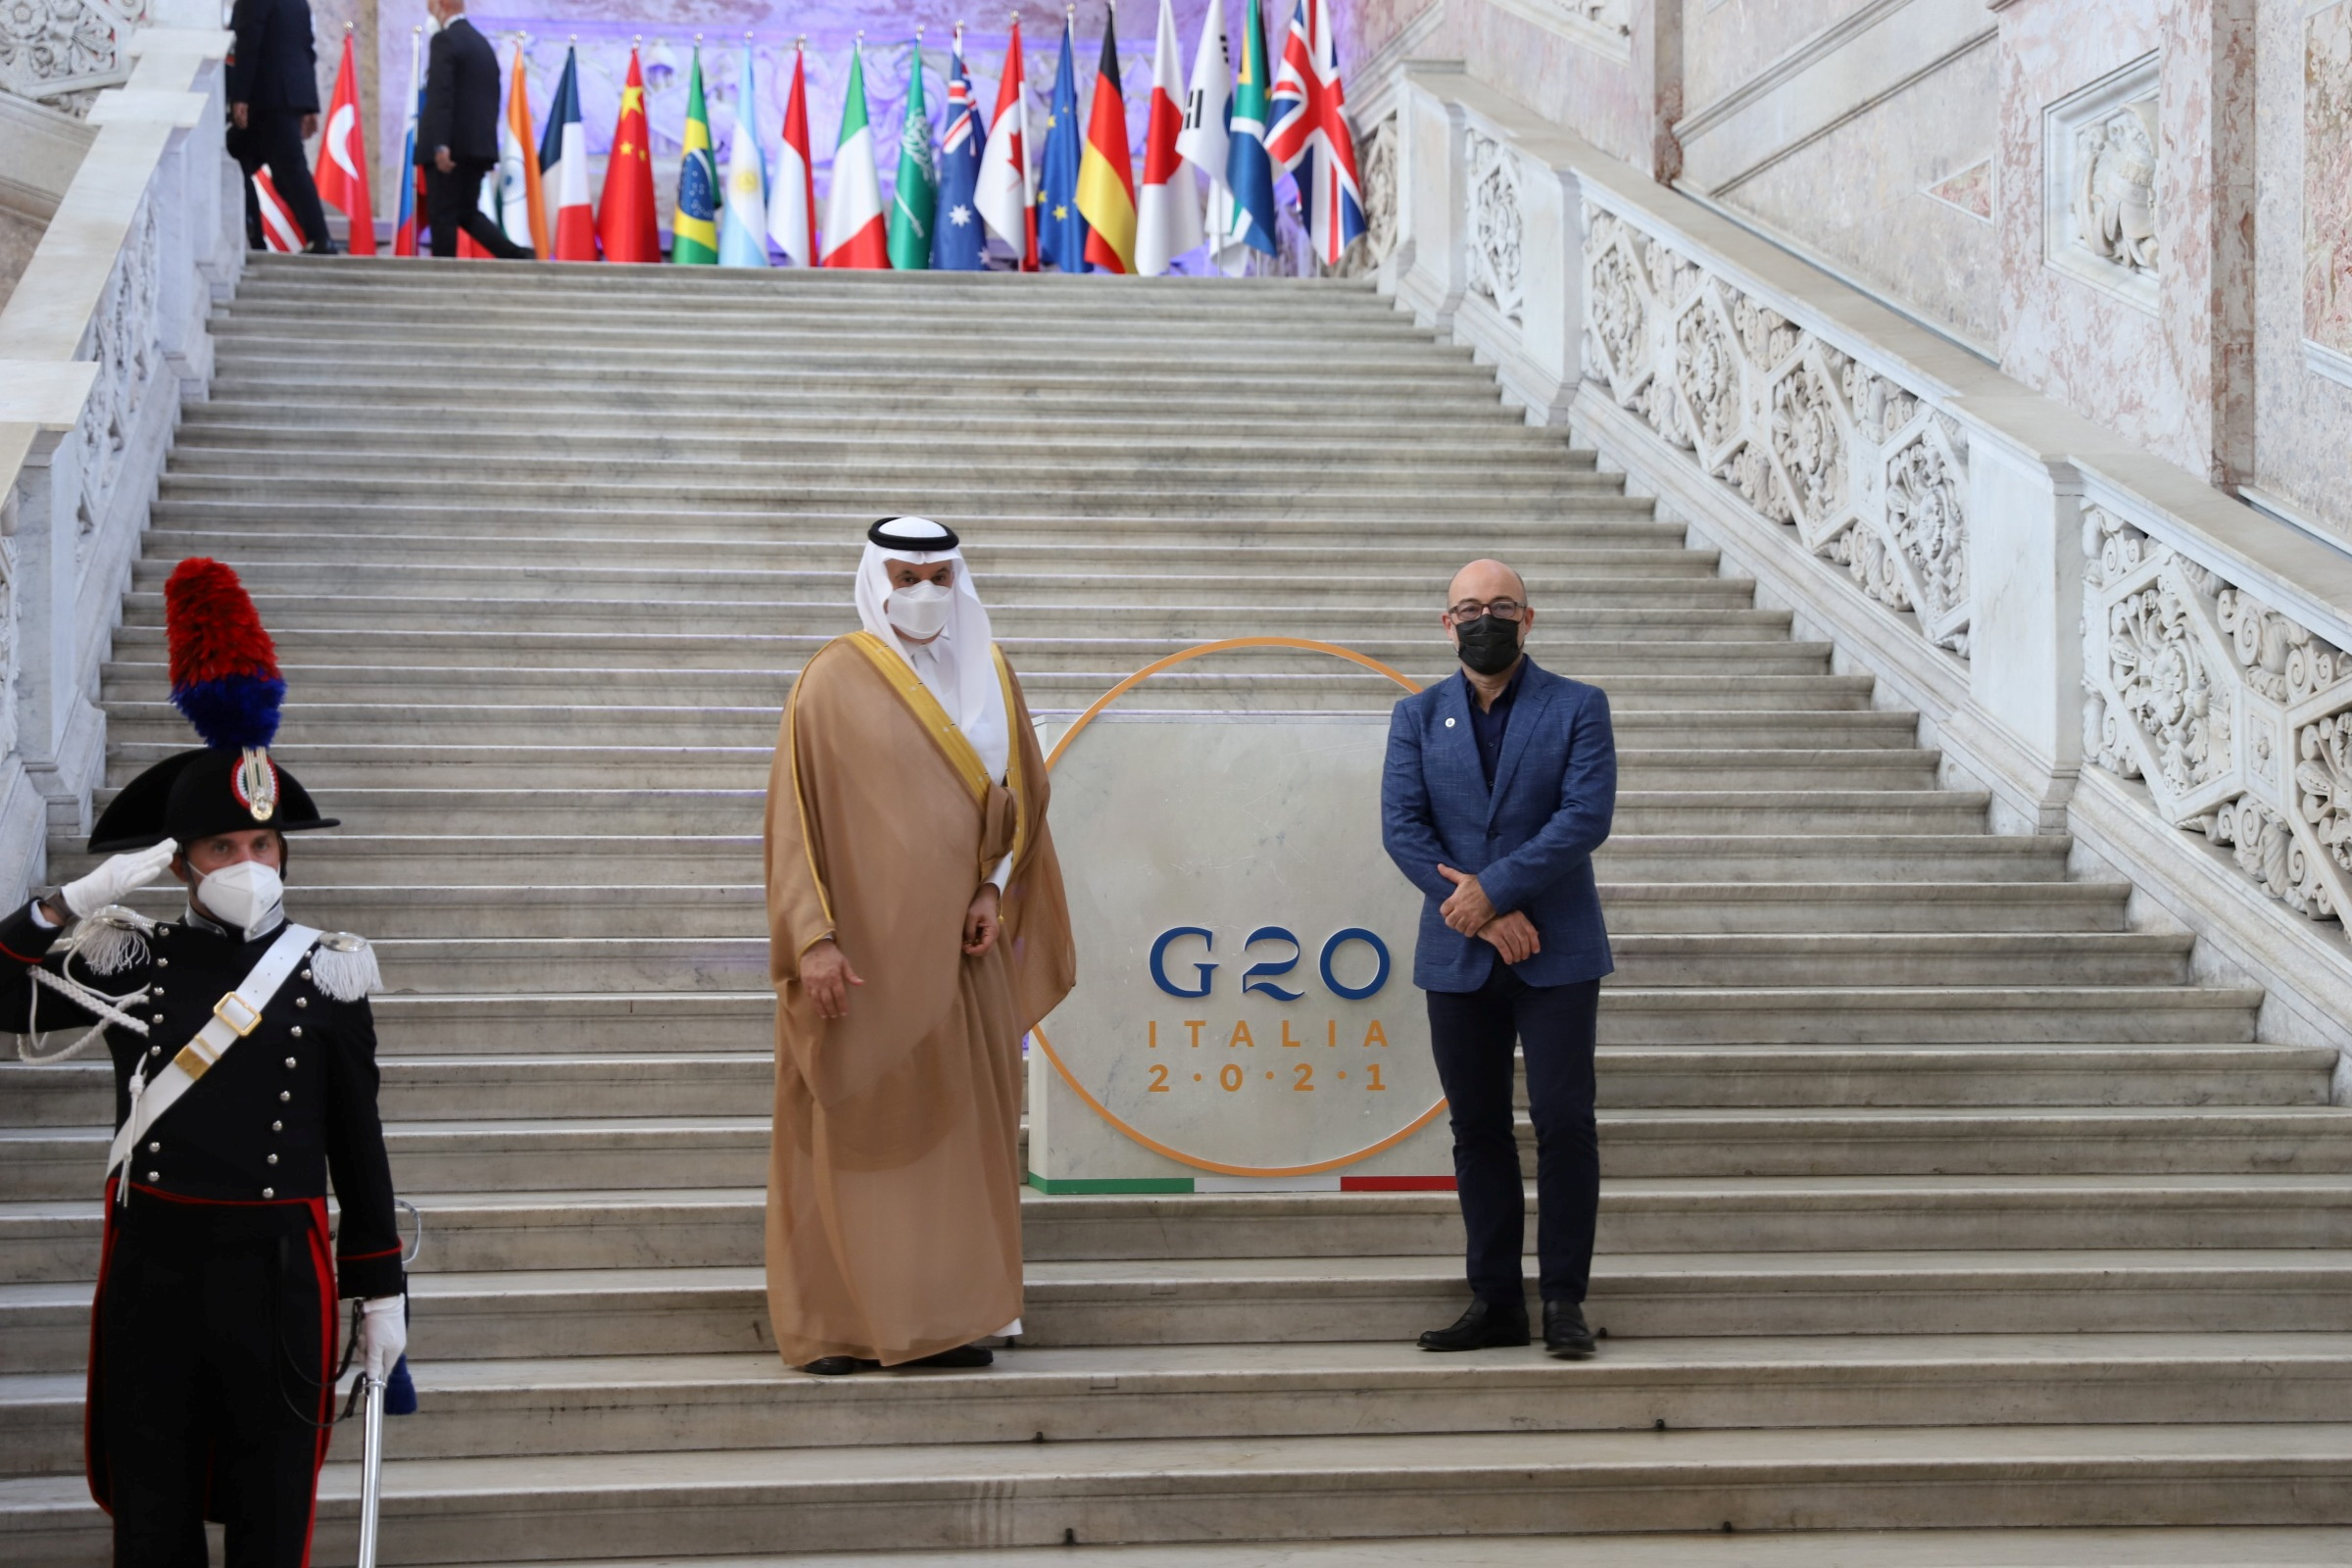 Saudi Arabia's Environment, Water and Agriculture Minister Abdulrahman Al-Fadhli and Italy's Ecological Transition Minister Roberto Cingolani pose for a photograph at the start of the G20 Environment, Climate and Energy Ministers' Meeting in Naples, Italy, July 22, 2021. G20Italy/Handout via REUTERS